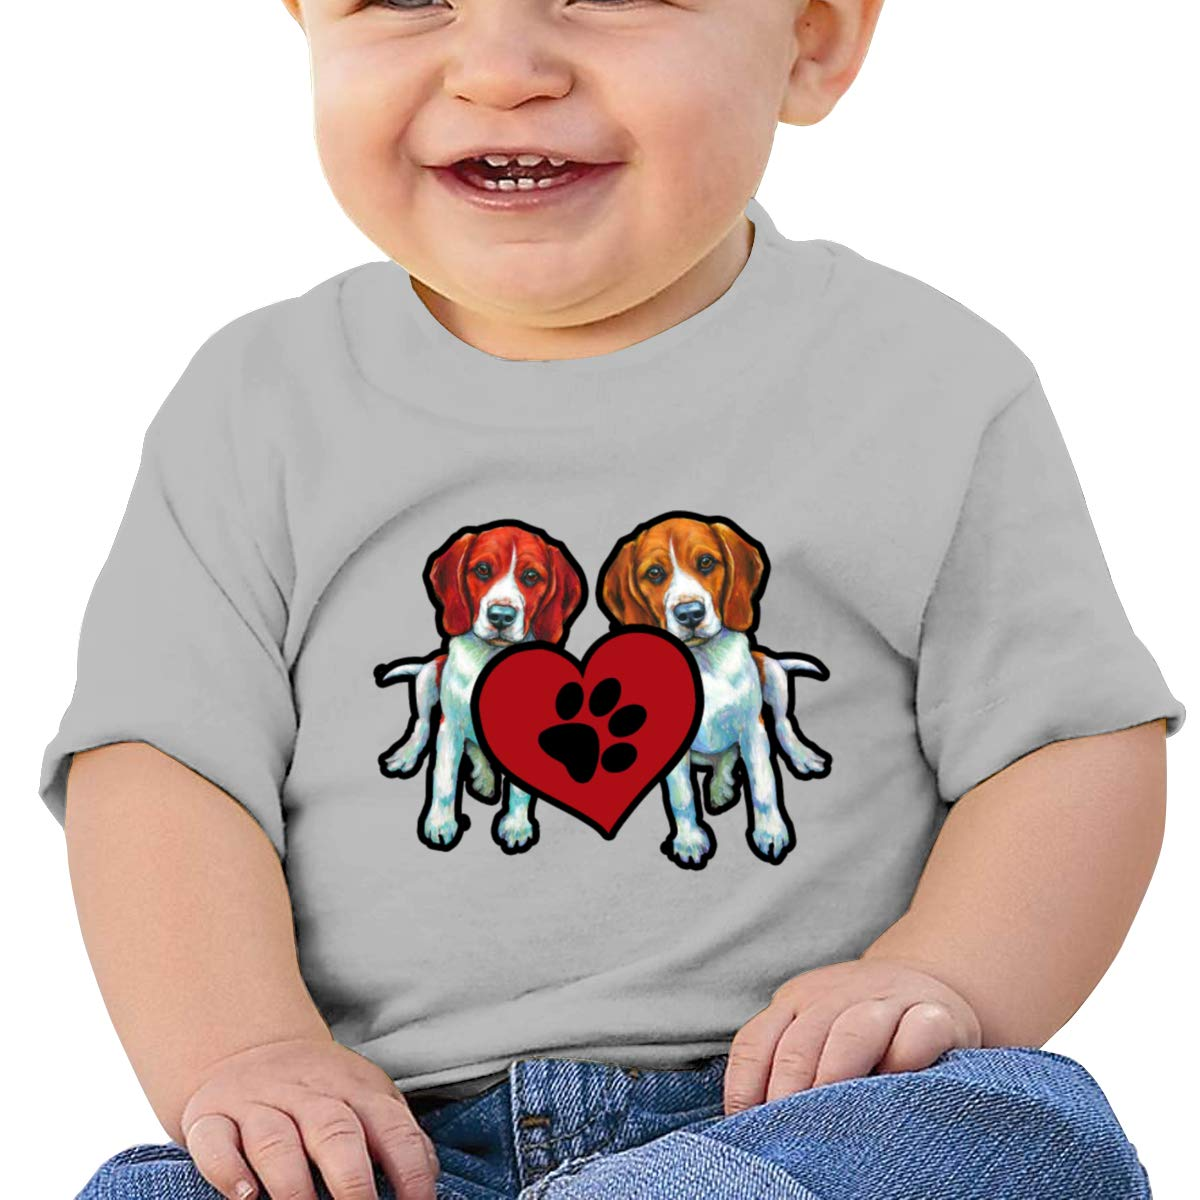 Arsmt Beagle Dogs Heart Infan Short Sleeve Tshirt Girls Birthday Gift